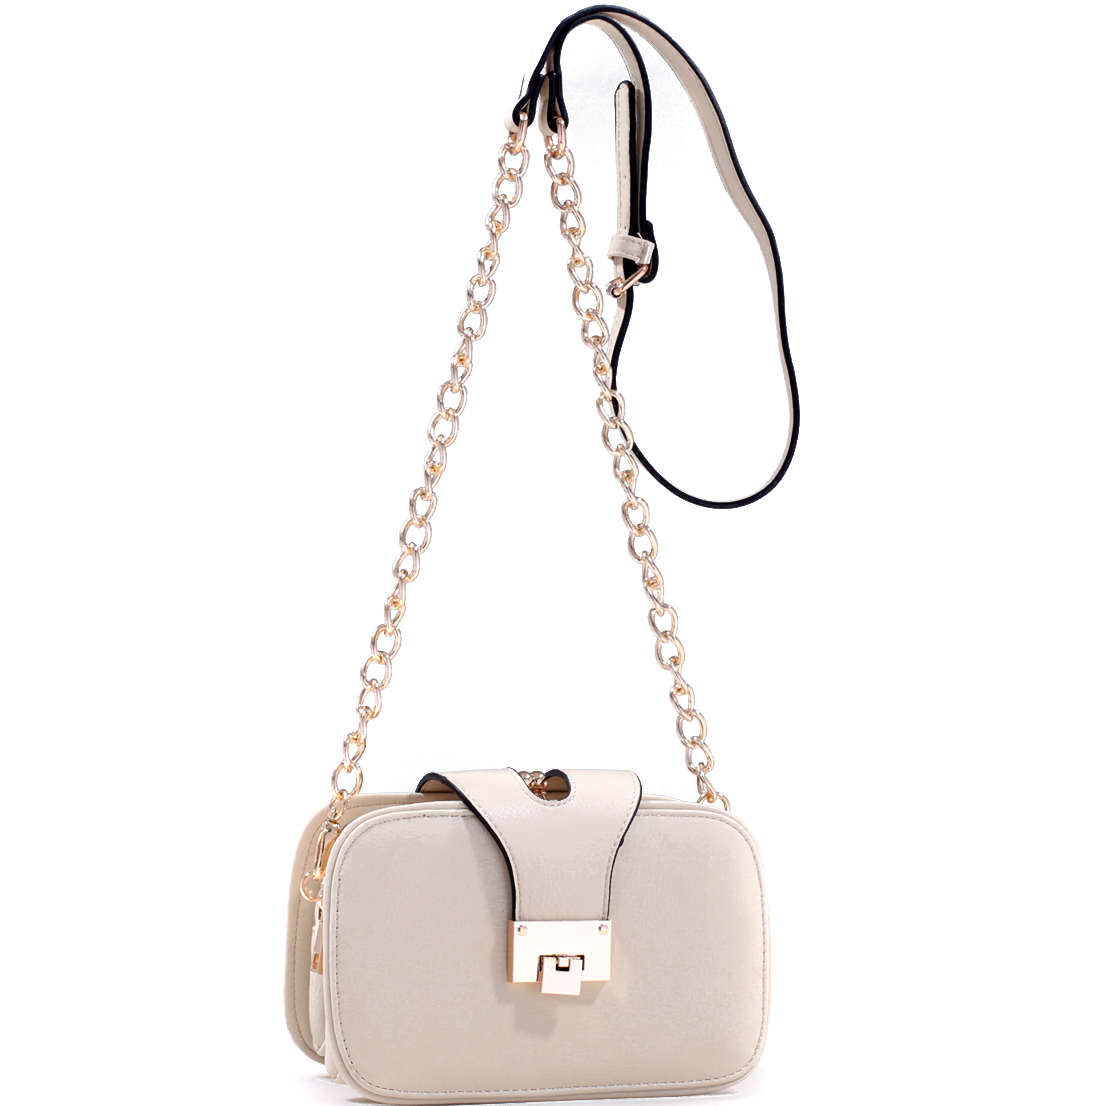 Mini Gold-Tone Chain Strap Crossbody Bag